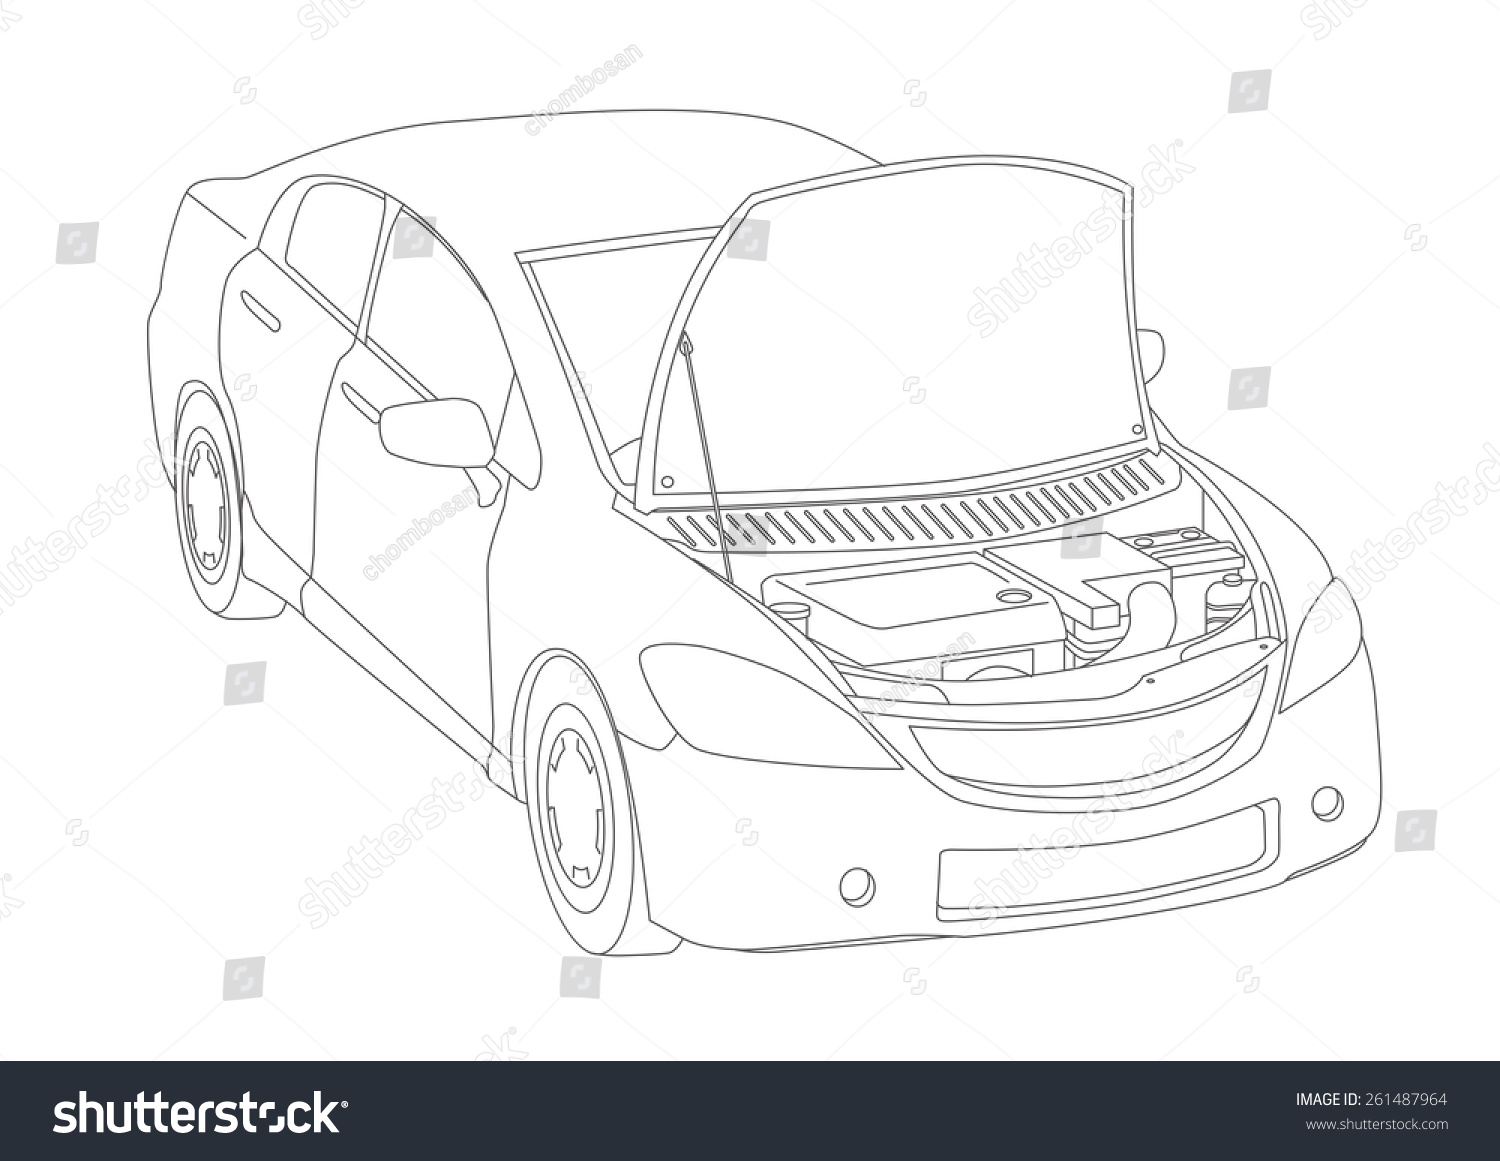 Line Drawing Car : Generic vehicle line drawing illustration stock vector 261487964